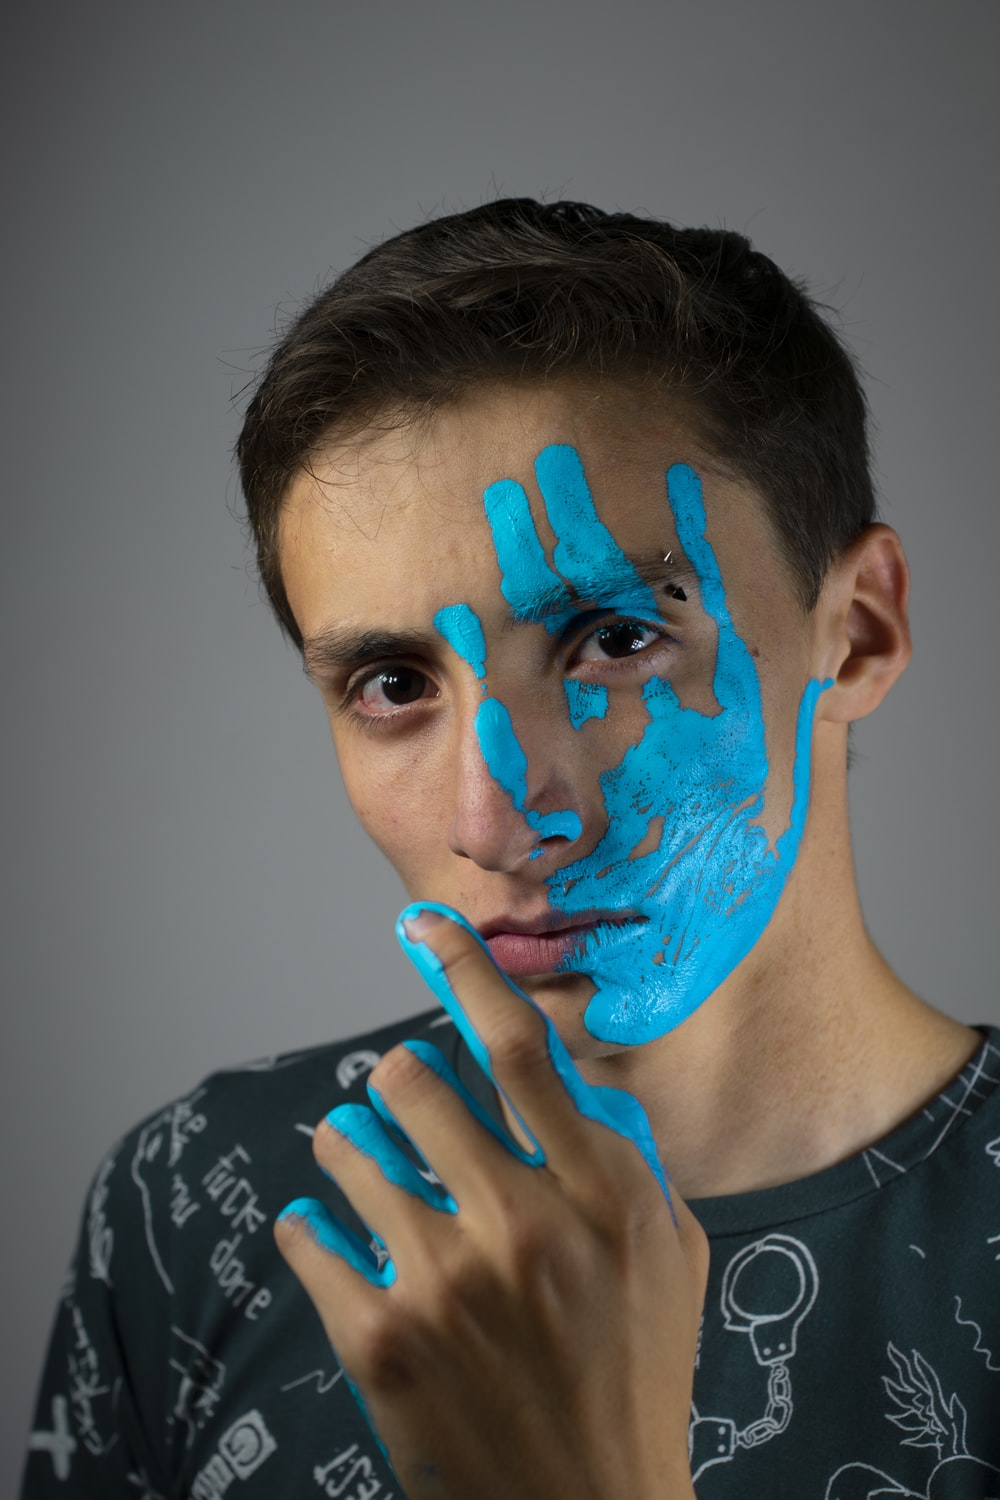 woman in black and white crew neck shirt with blue face paint